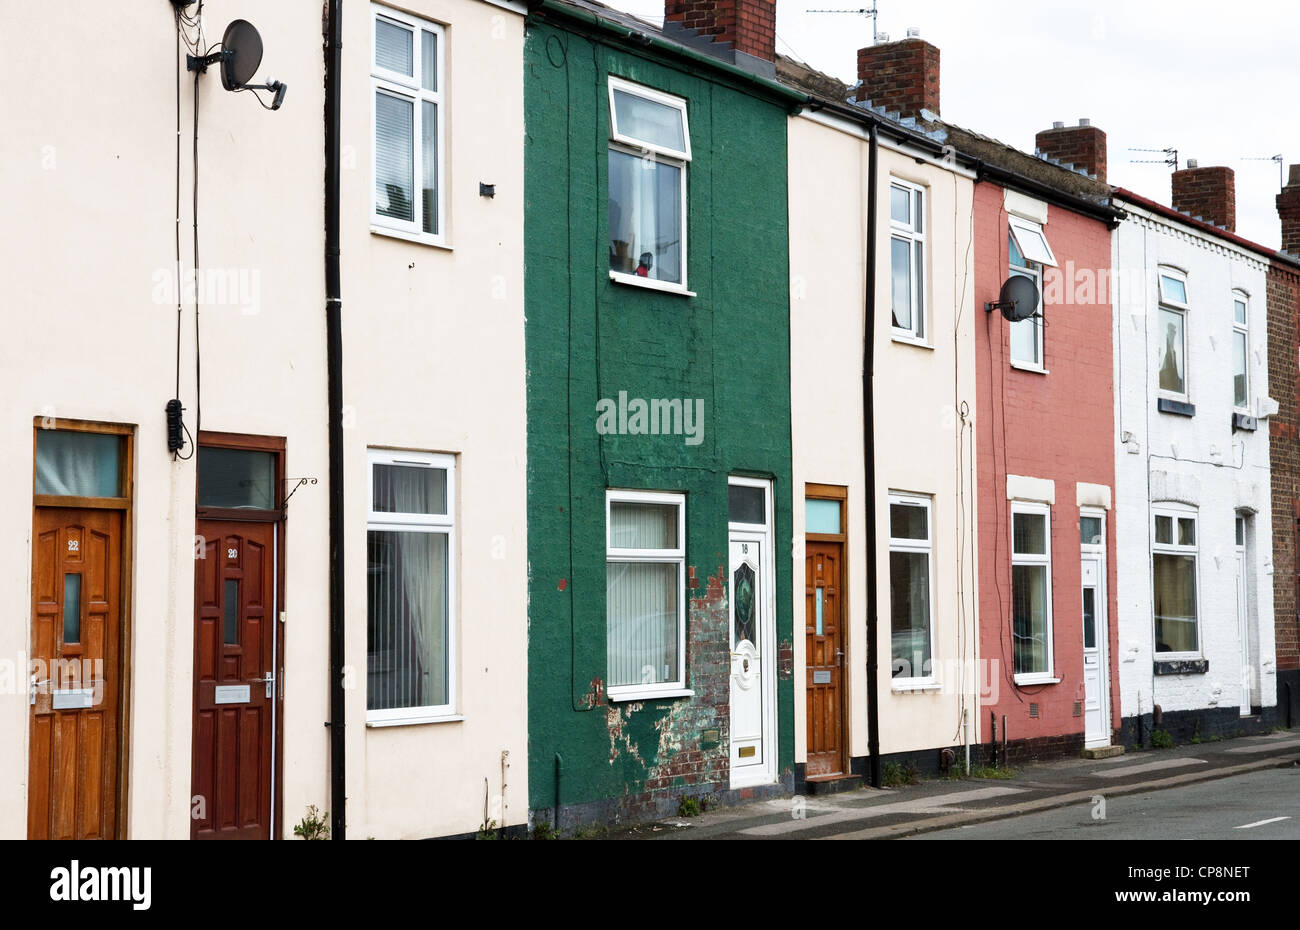 Terraced houses in Irlam, Salford, Greater Manchester, England,UK - Stock Image